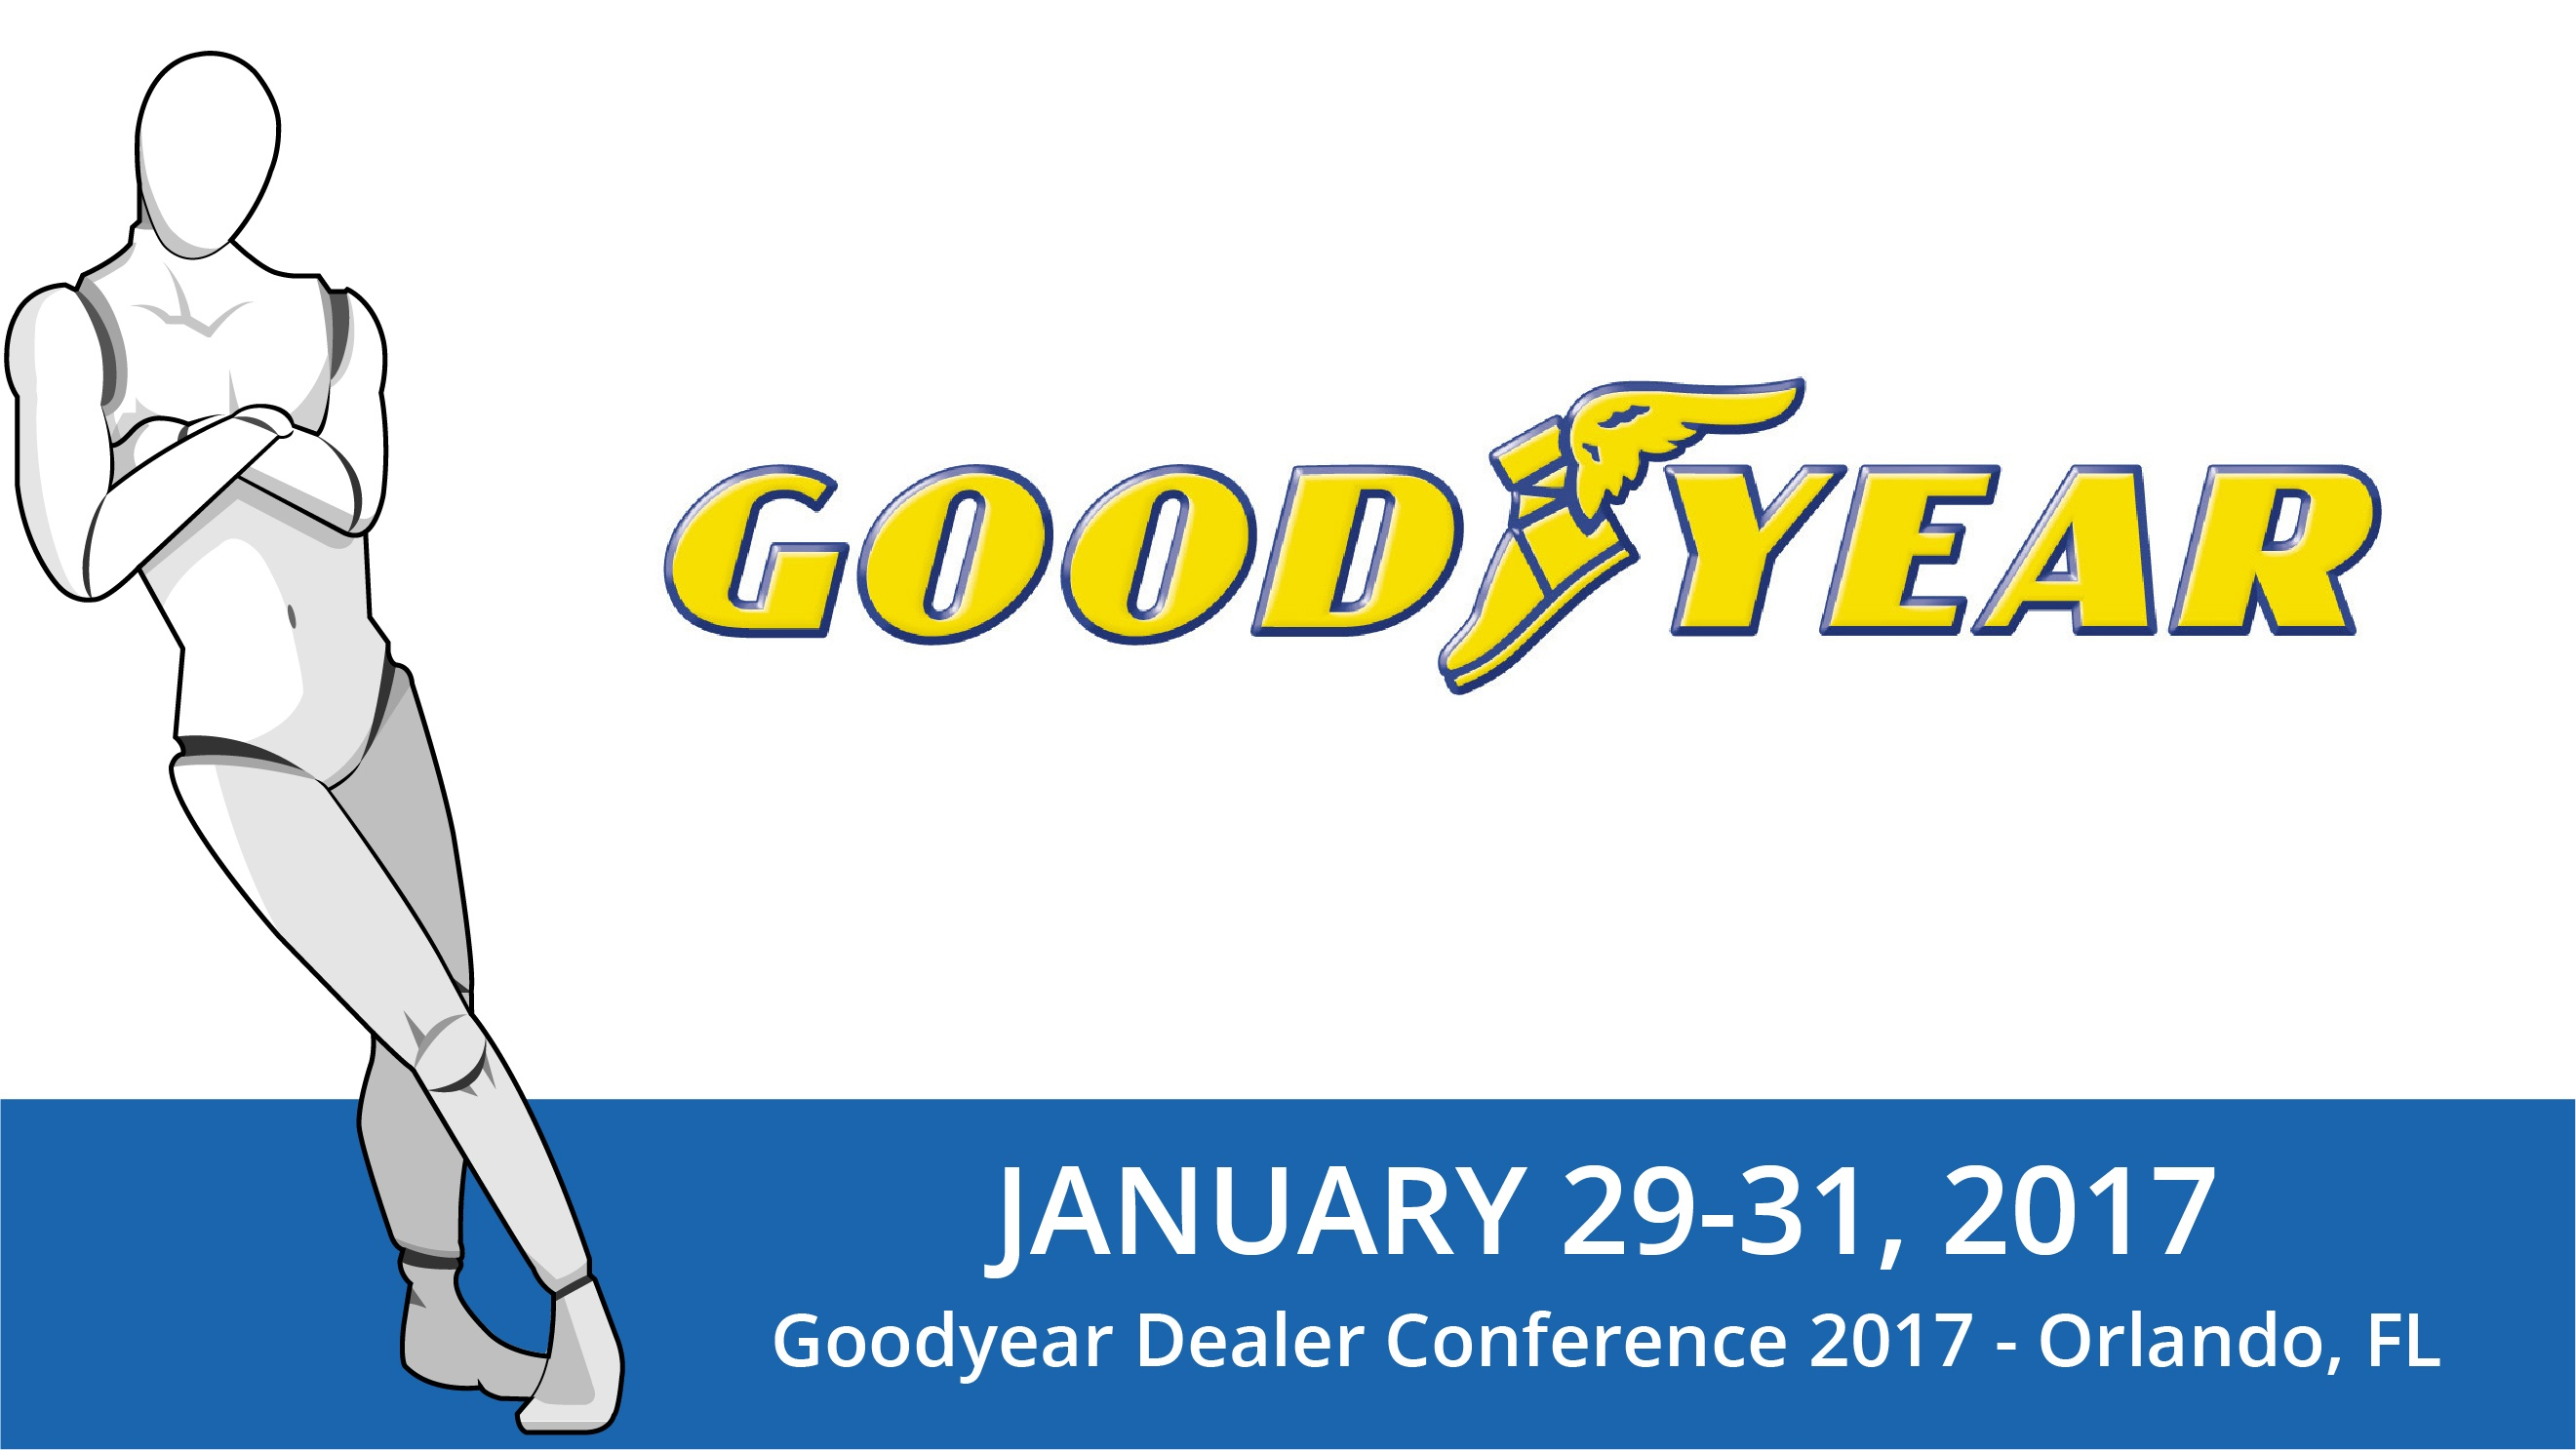 Blog Image tour (goodyear 2017) 2.jpg